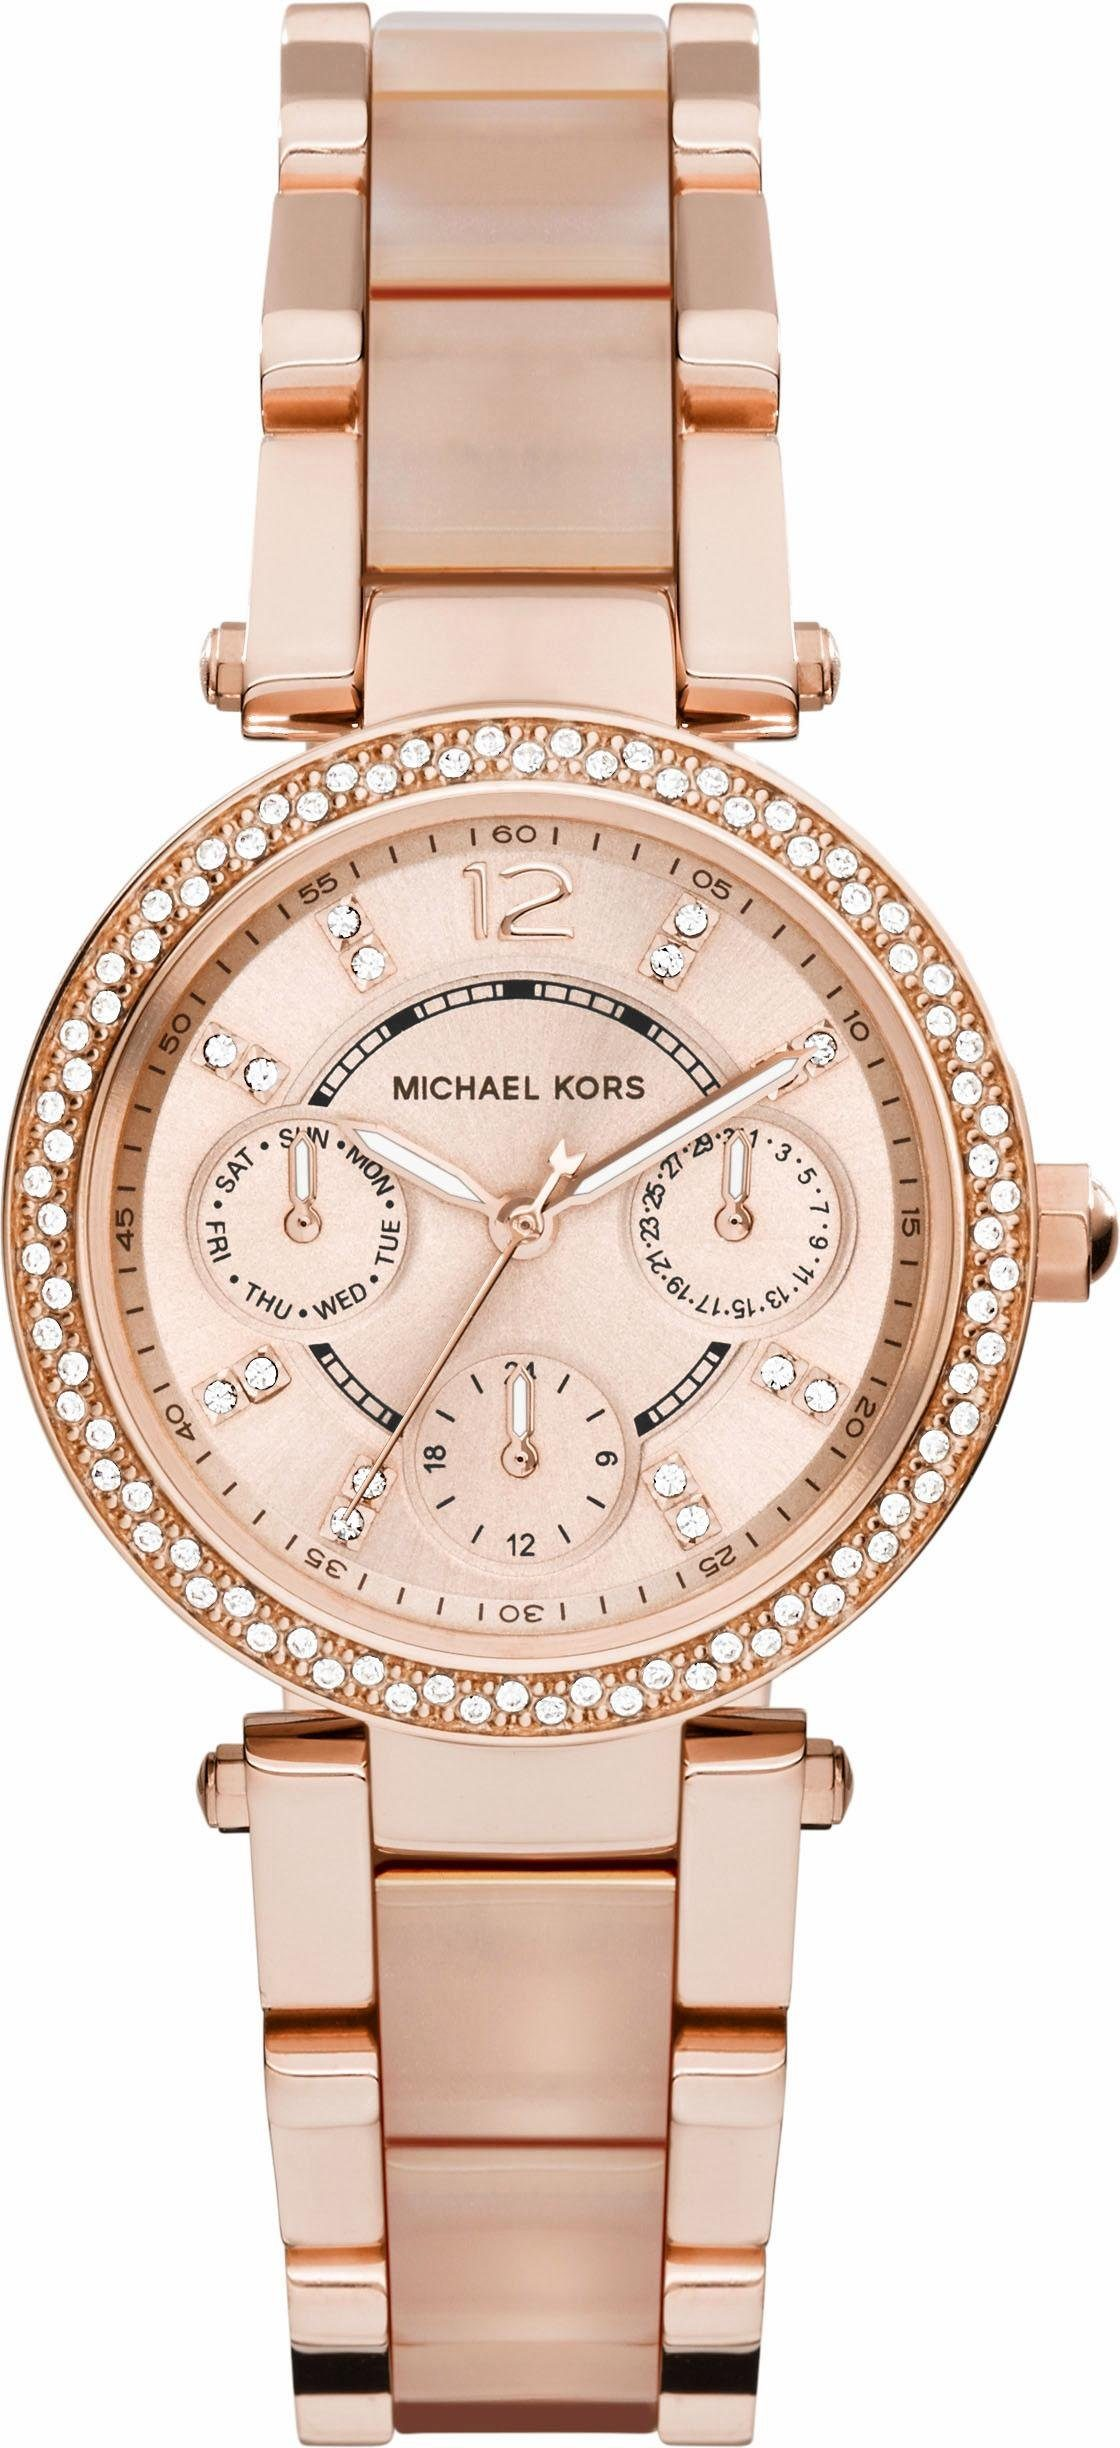 MICHAEL KORS Multifunktionsuhr »MINI PARKER, MK6110«